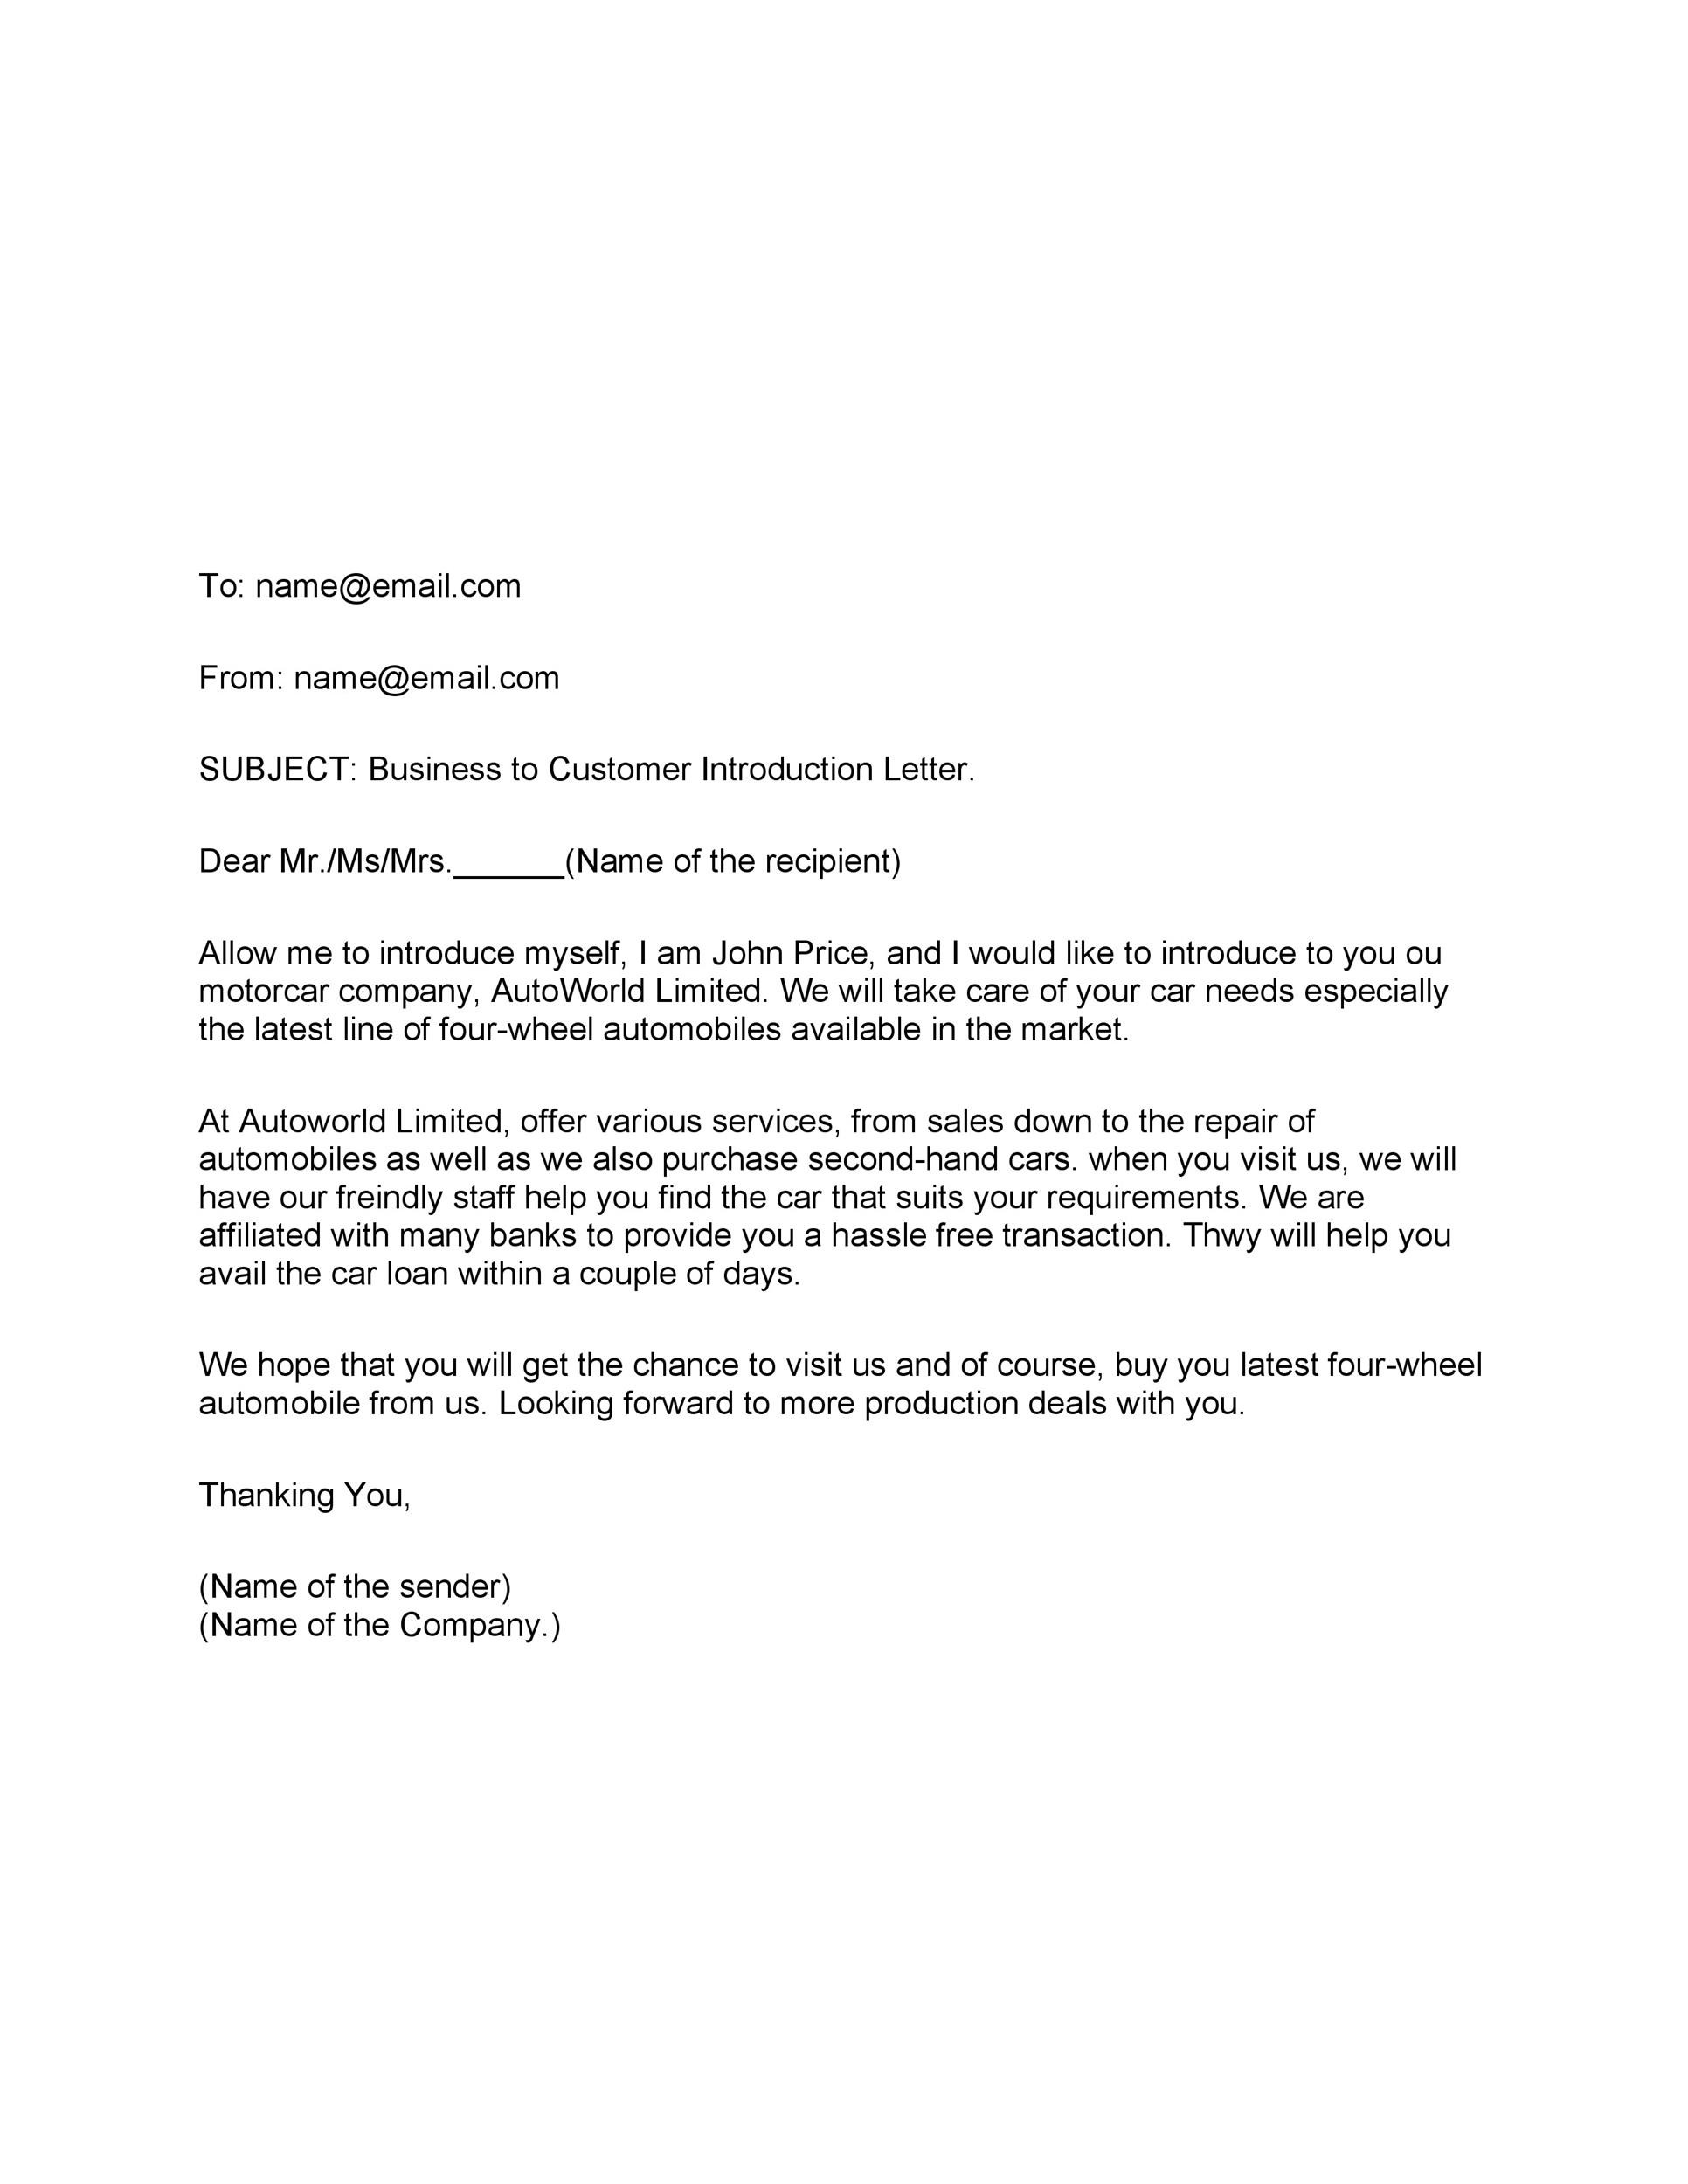 Free business introduction letter 08